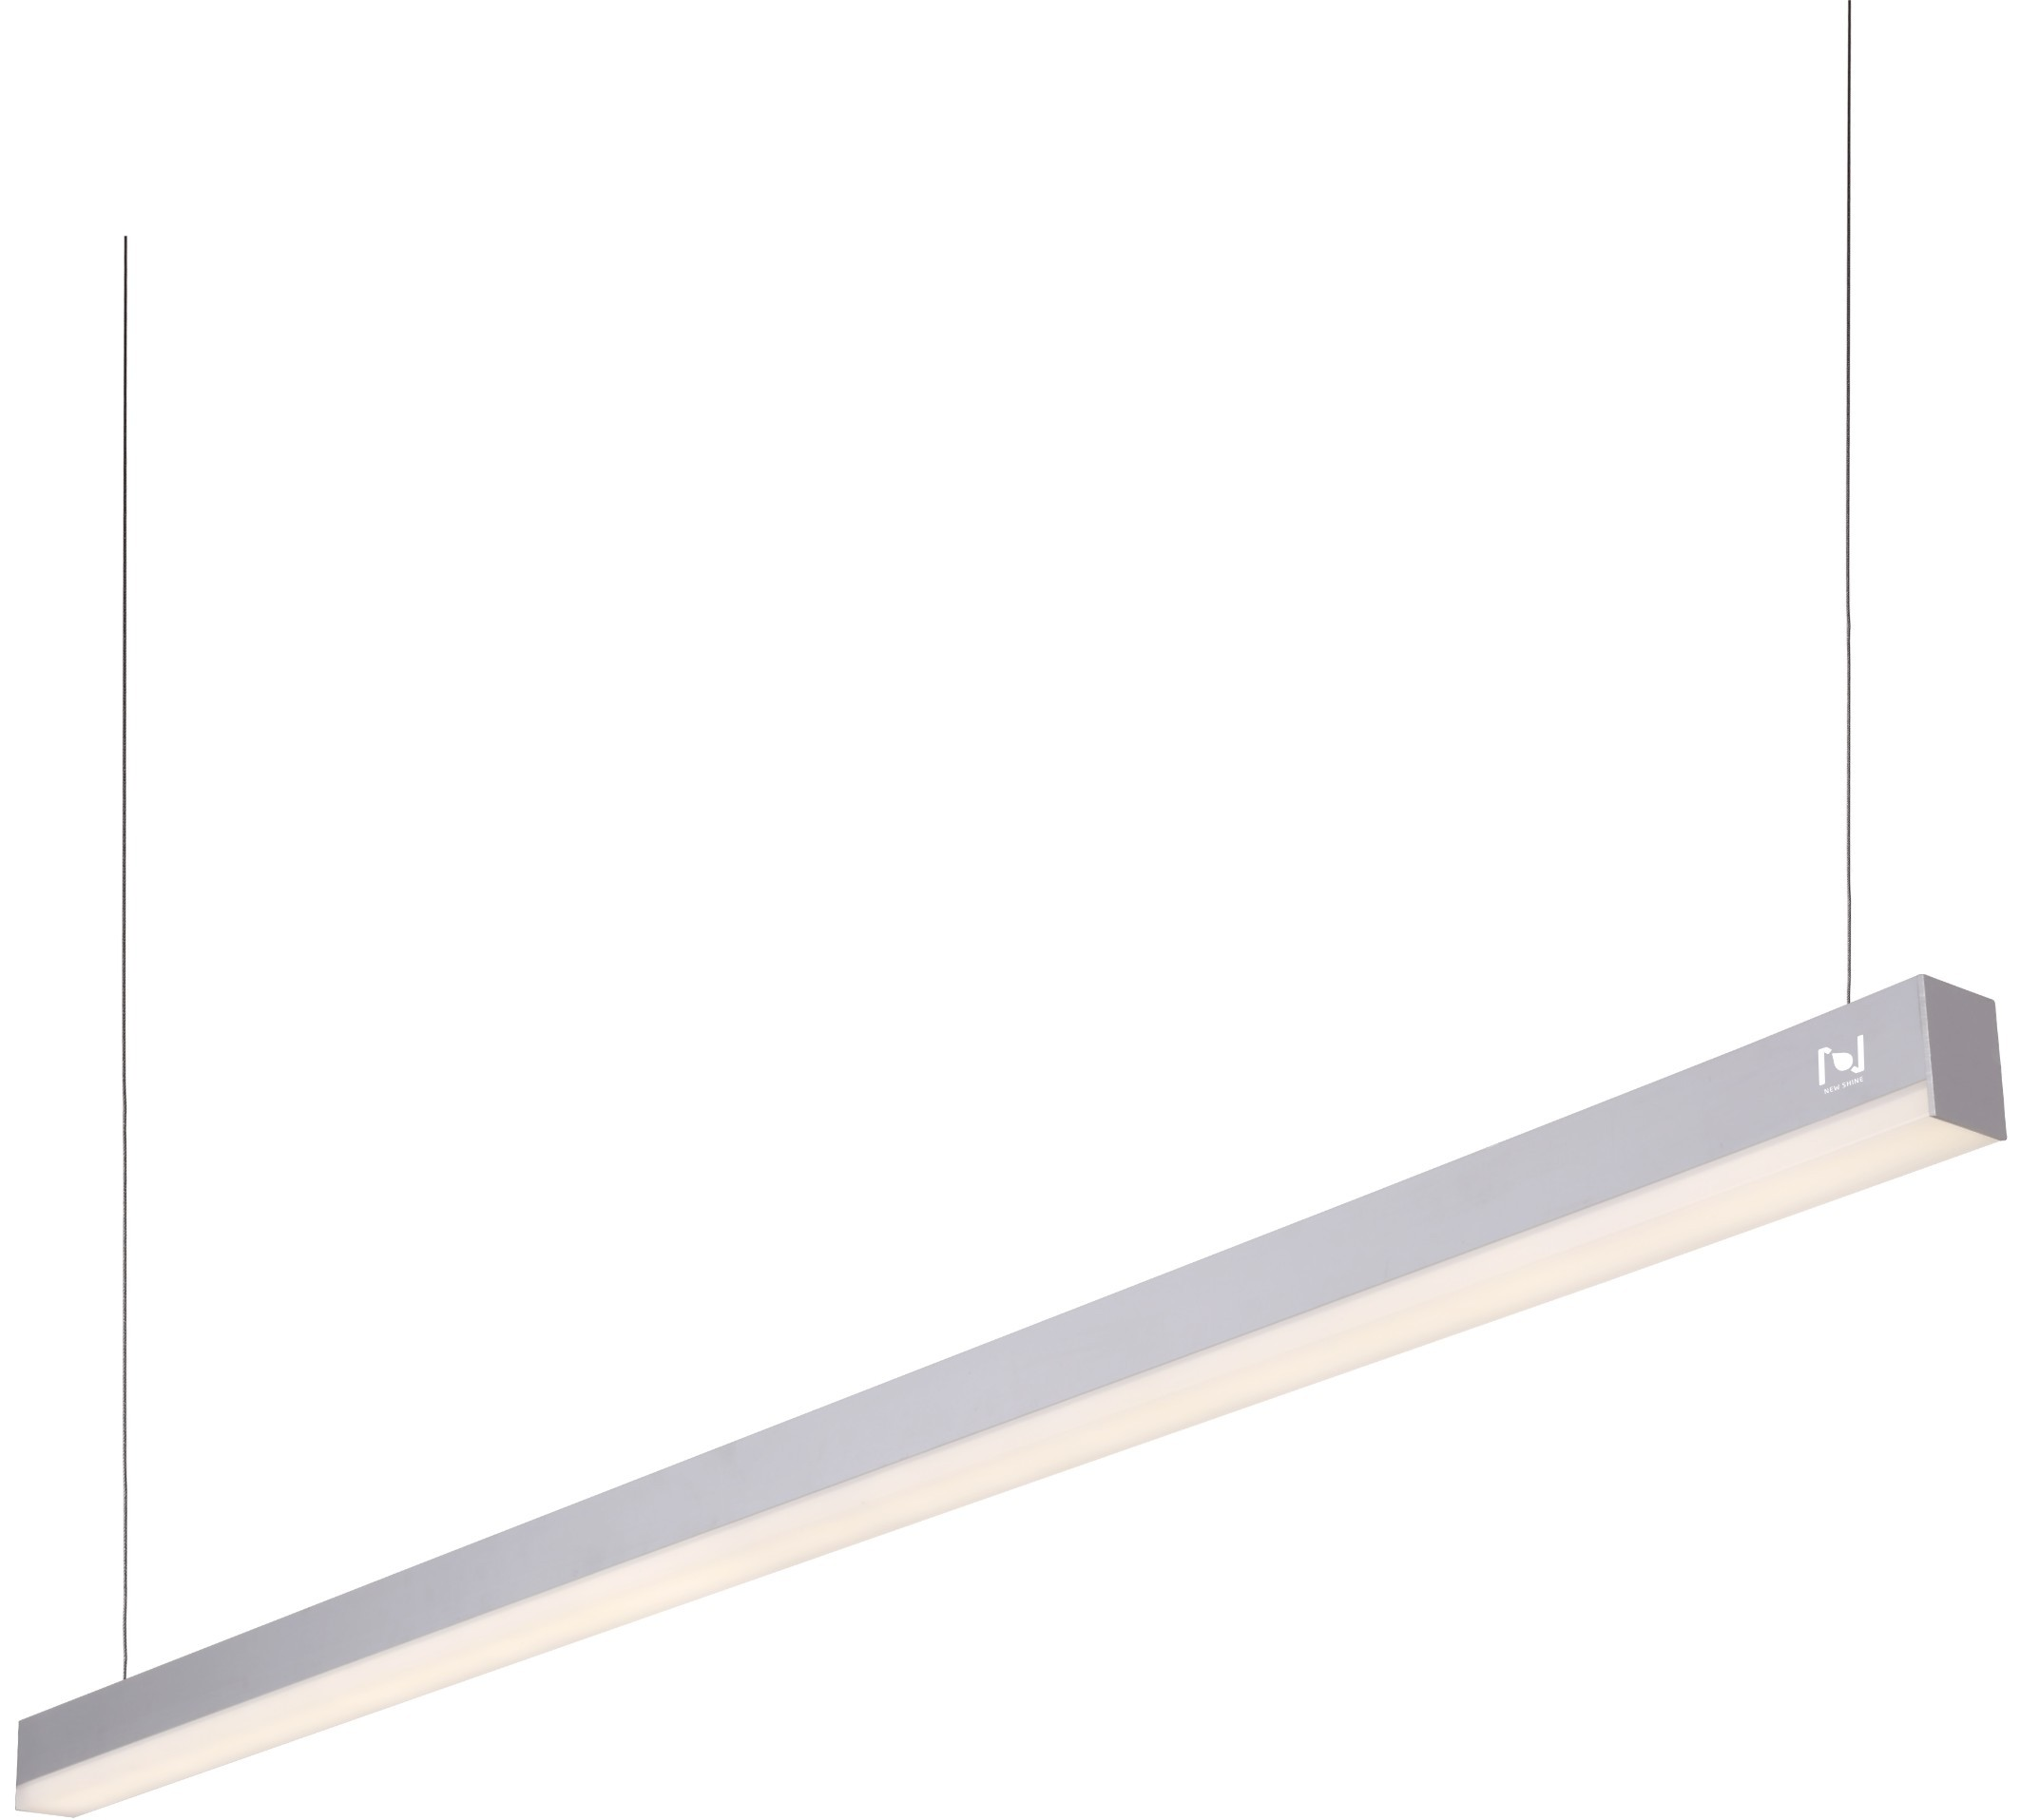 Linear Lights Architectural Lighting Linear Led Lighting